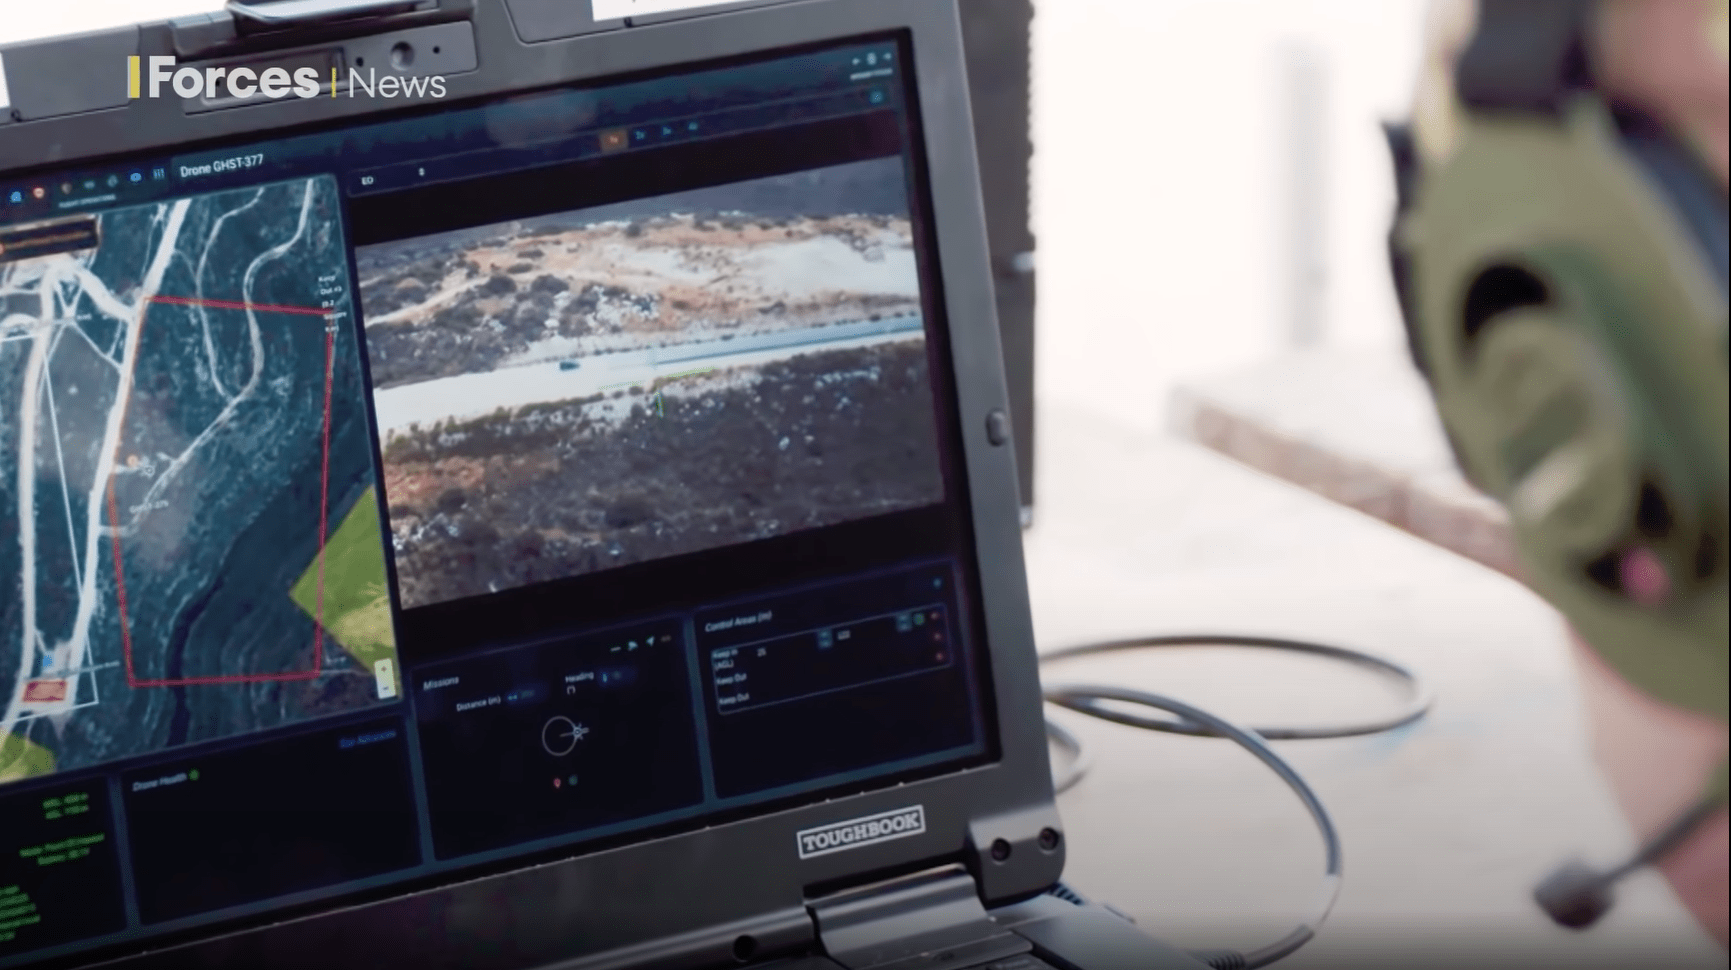 Loaded with thermal imaging cameras, it can capture video of enemy combatants or encampments from afar and beam the footage back to Marine commanders